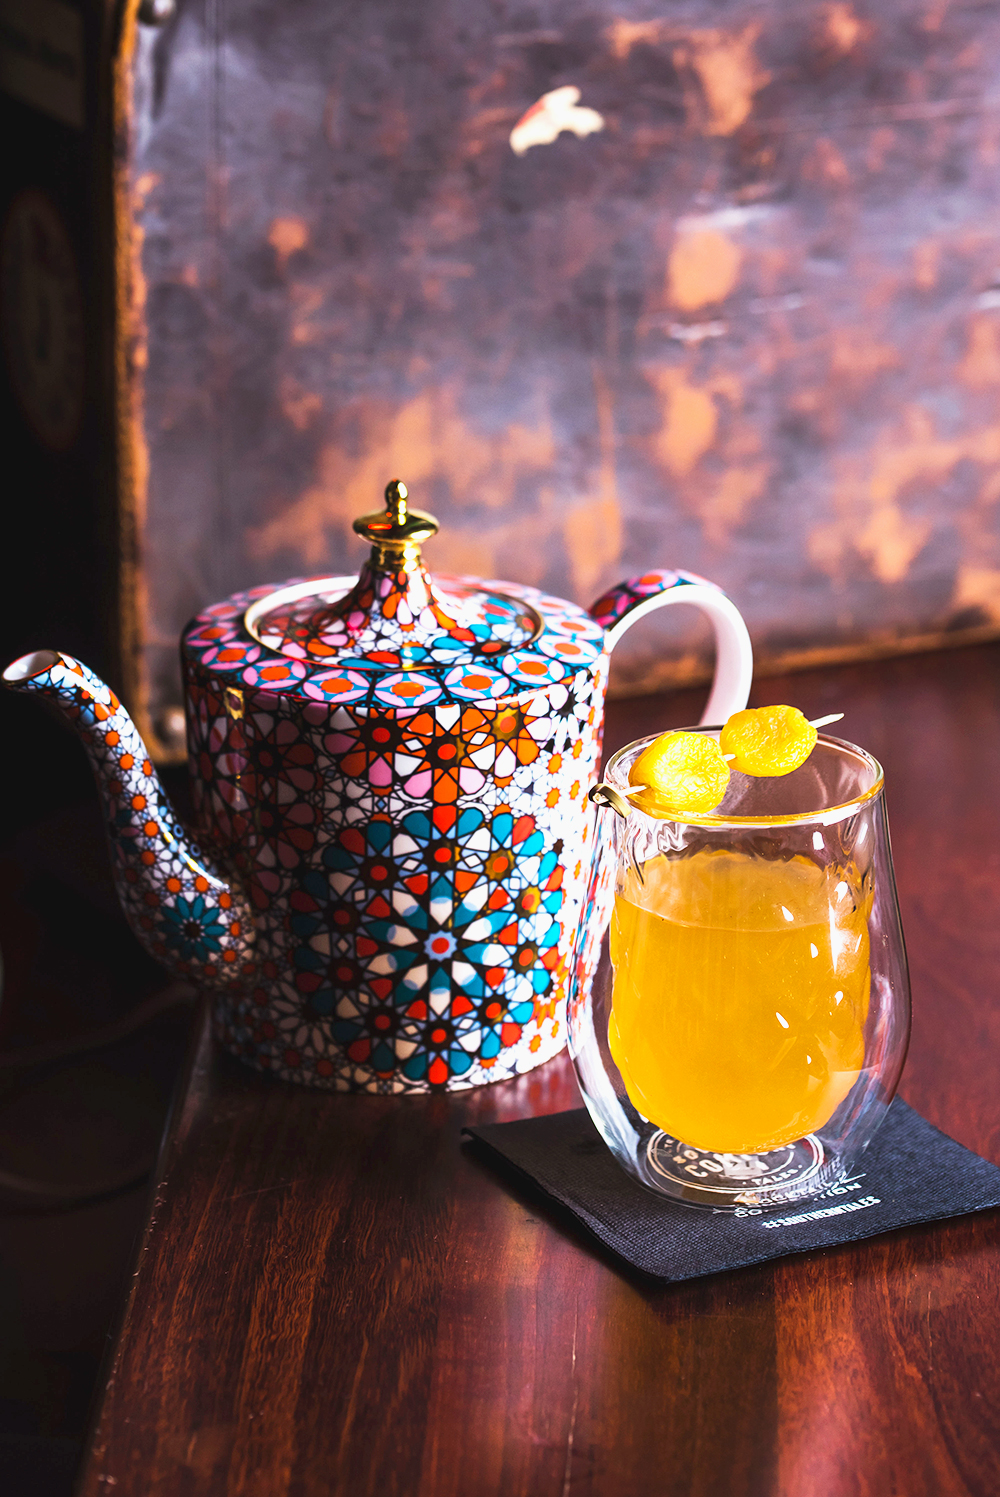 'Southern Comfort Hot Toddy' by Gregory Perrot